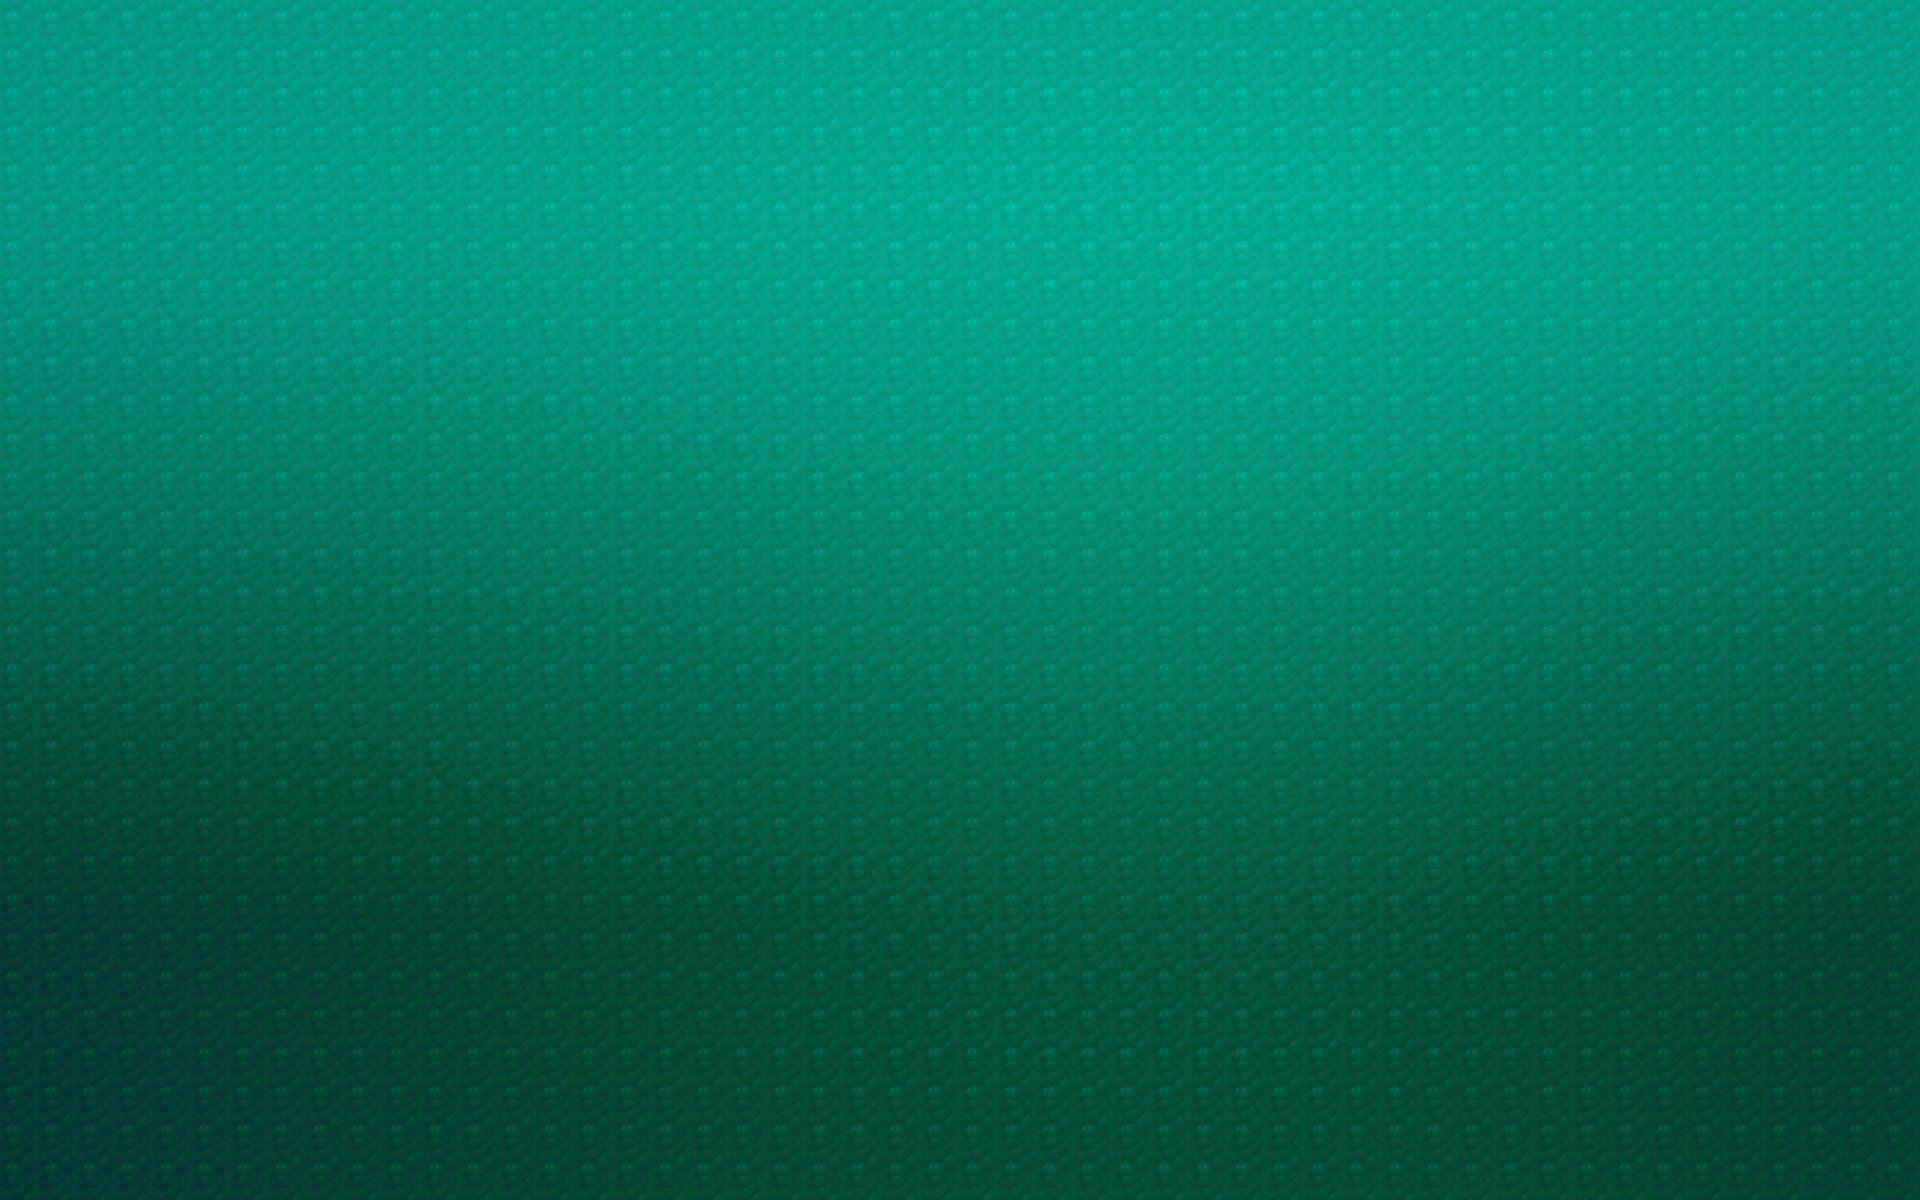 Green Gradient Wallpapers Wallpaper Cave